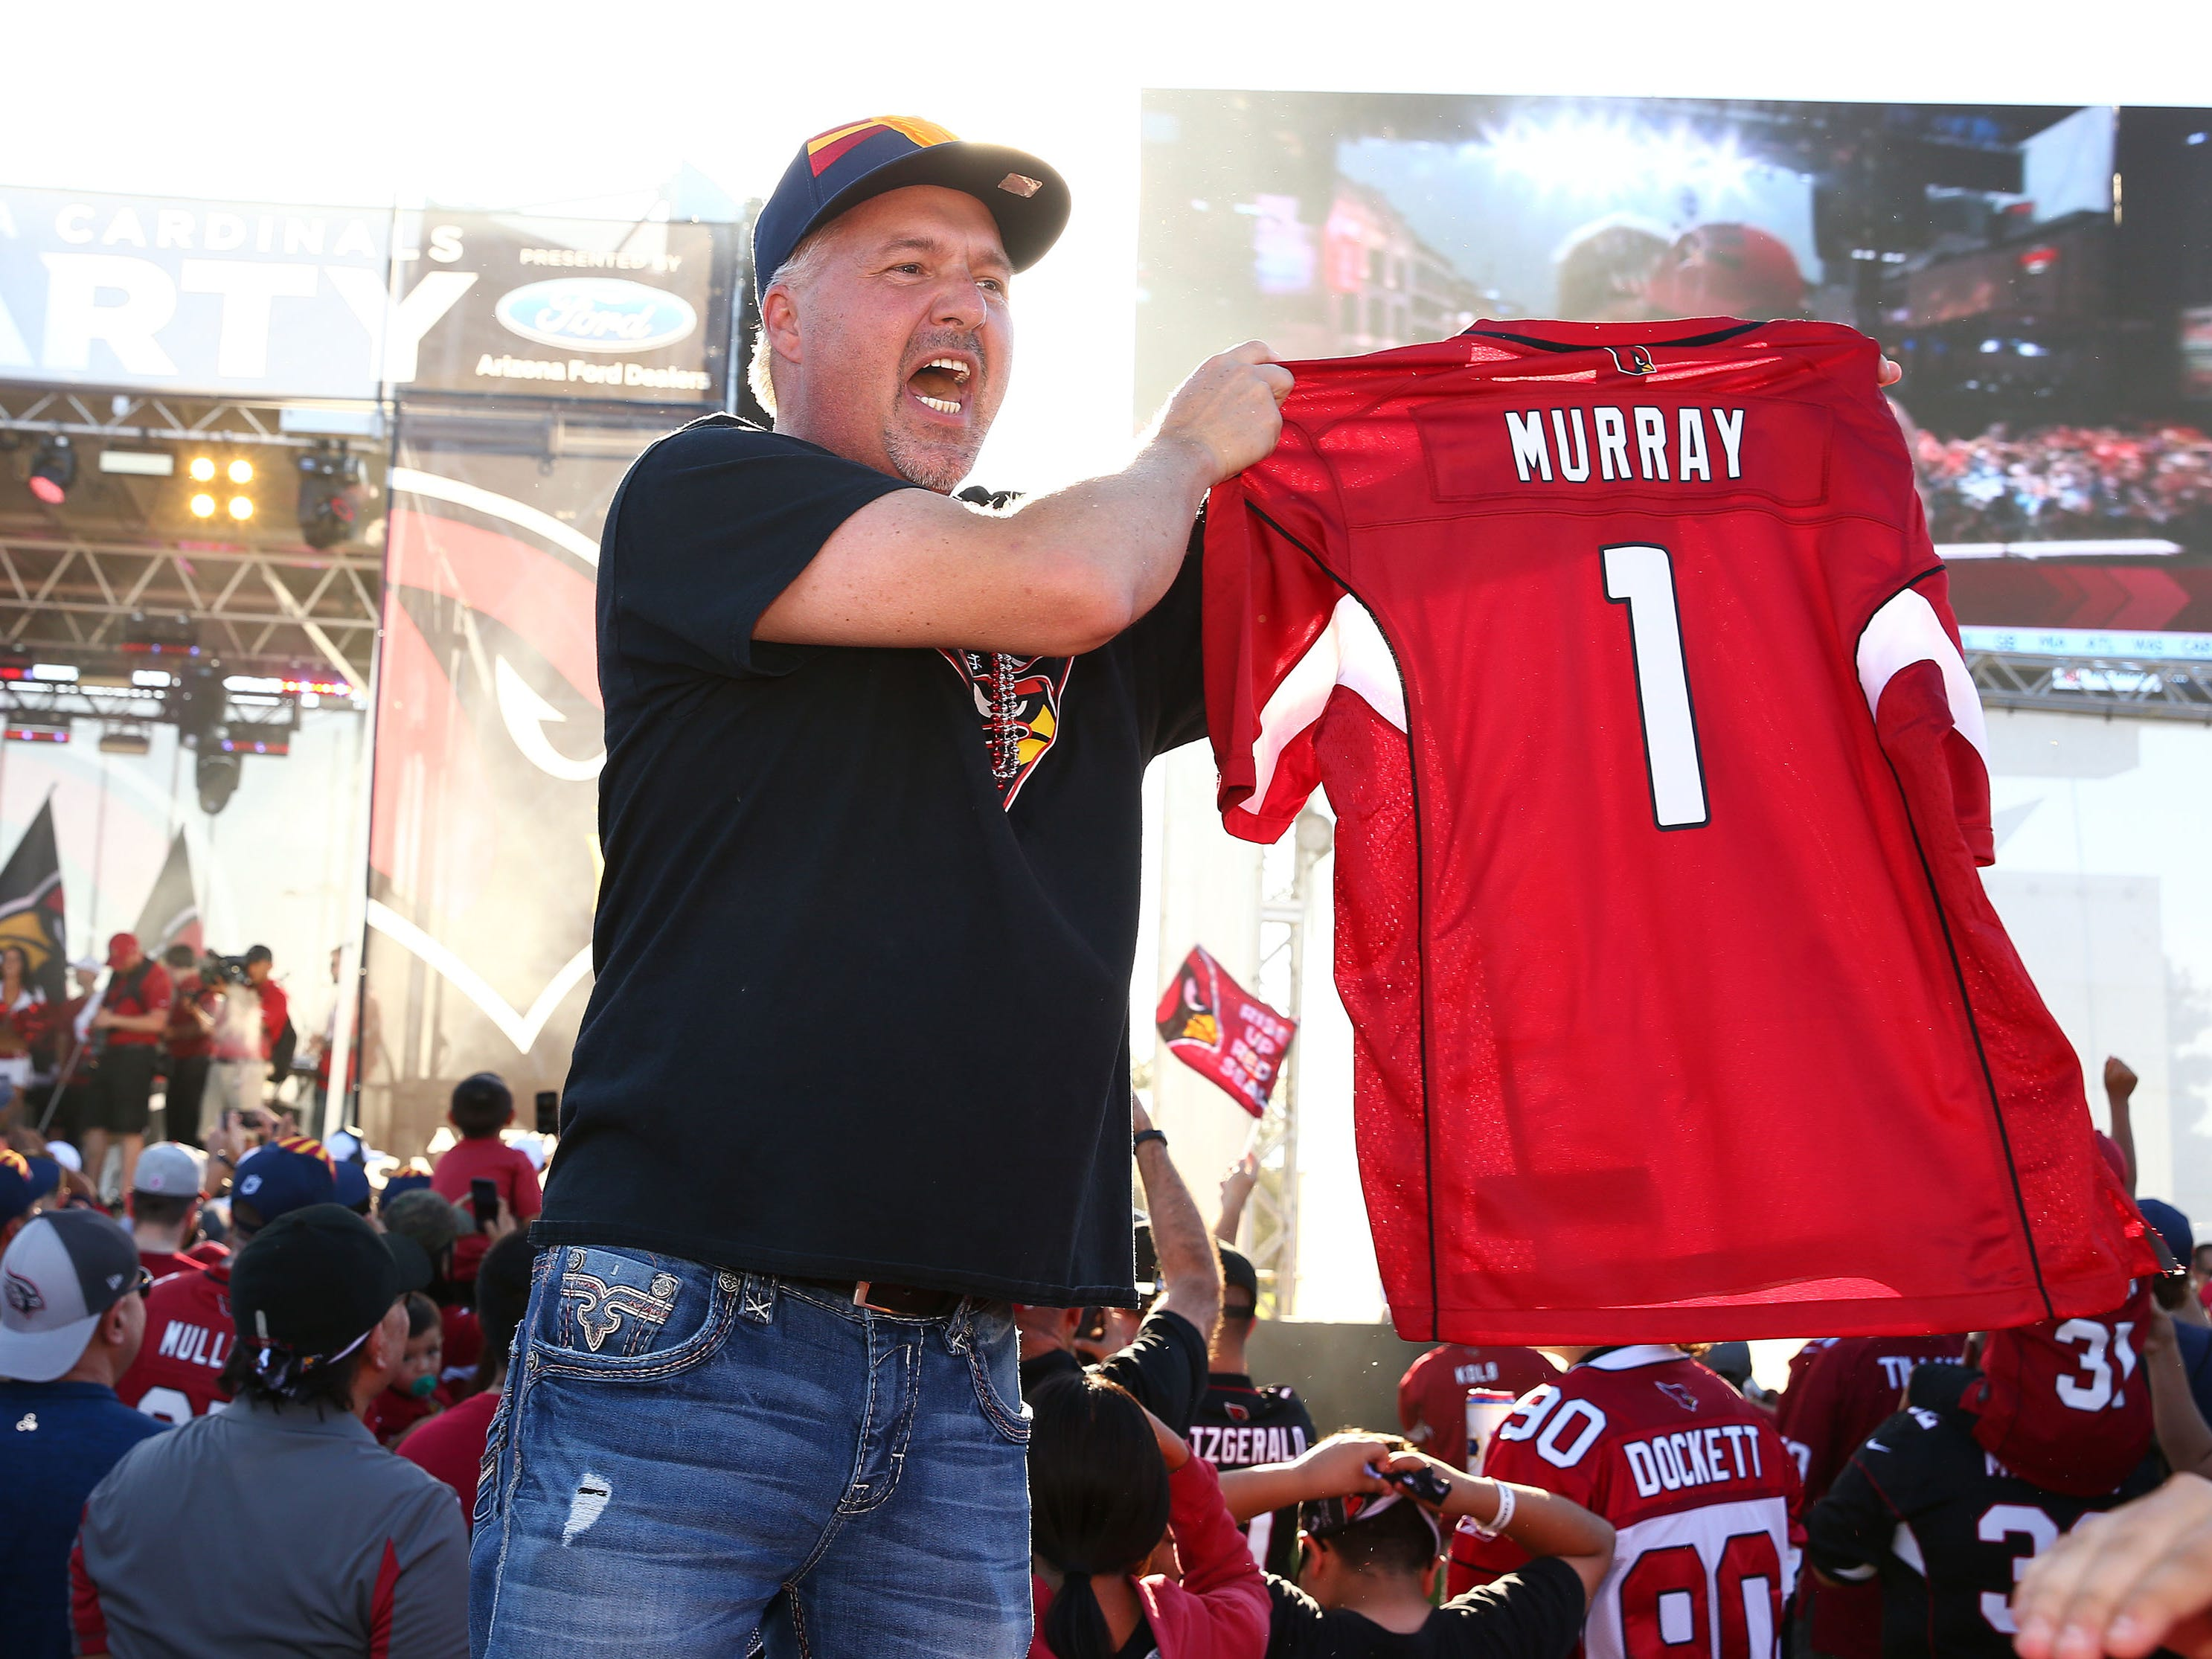 Eric Polansky of Cave Creek, Ariz.,holds-up a Murray jersey after the Arizona Cardinals used their number one draft pick to select quarterback Kyler Murray from Oklahoma during the NFL Draft watch party at State Farm Stadium on Apr. 25, 2019 in Glendale, Ariz.